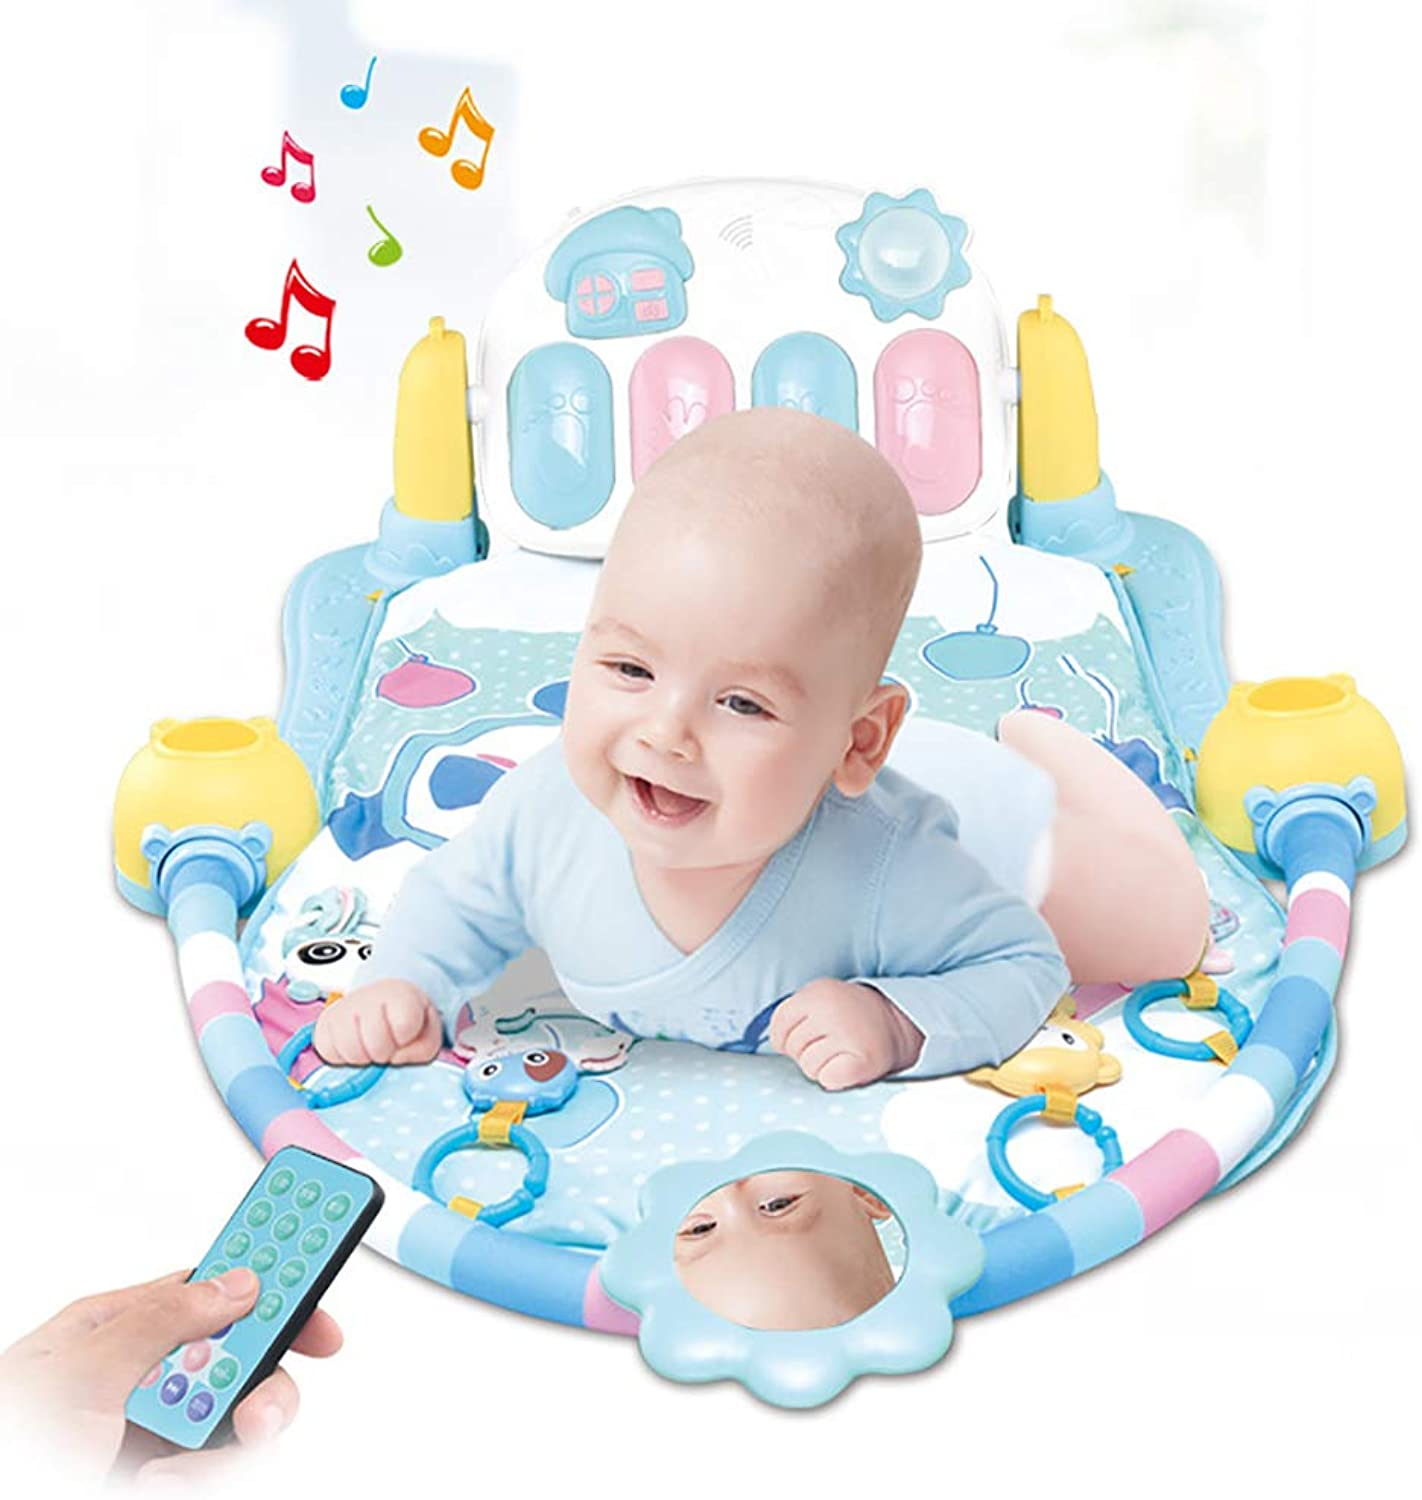 HSRG Baby Play Mat Baby Gym Spielzeug 0-12 Monate Soft Lighting Rattles Musical Toys for Babies Toys Play Piano Gym